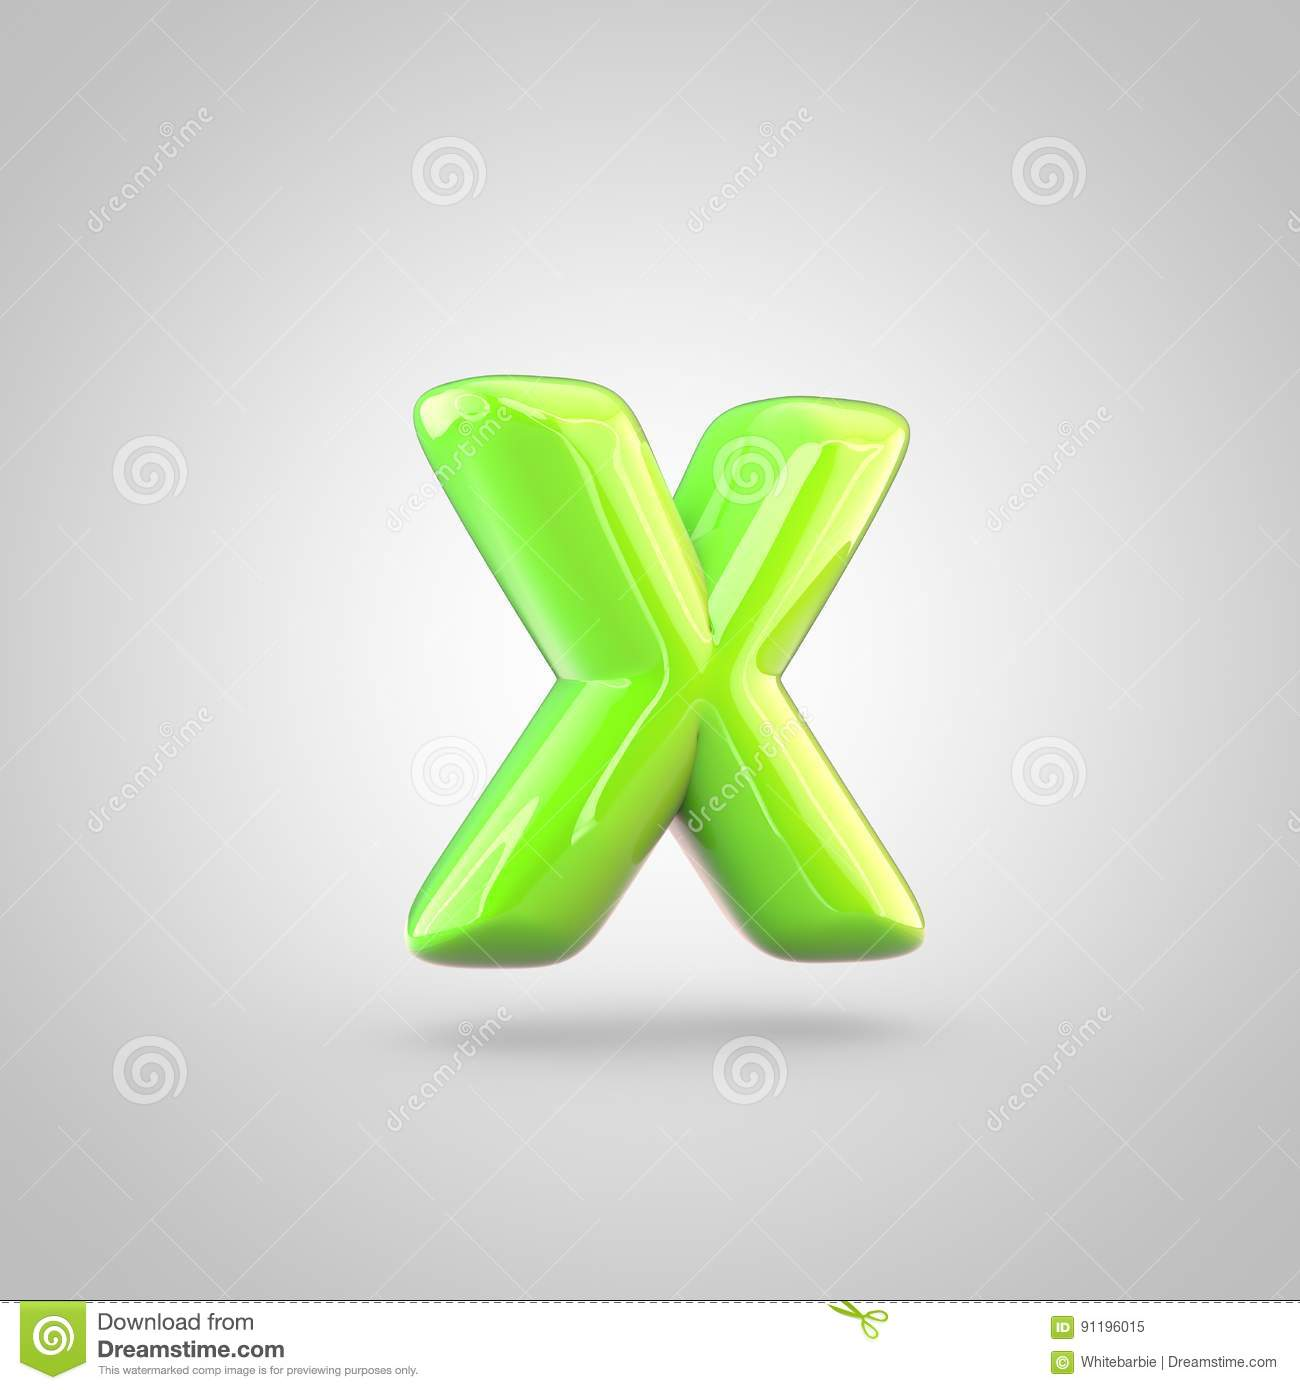 glossy lime paint alphabet letter x lowercase isolated on white background